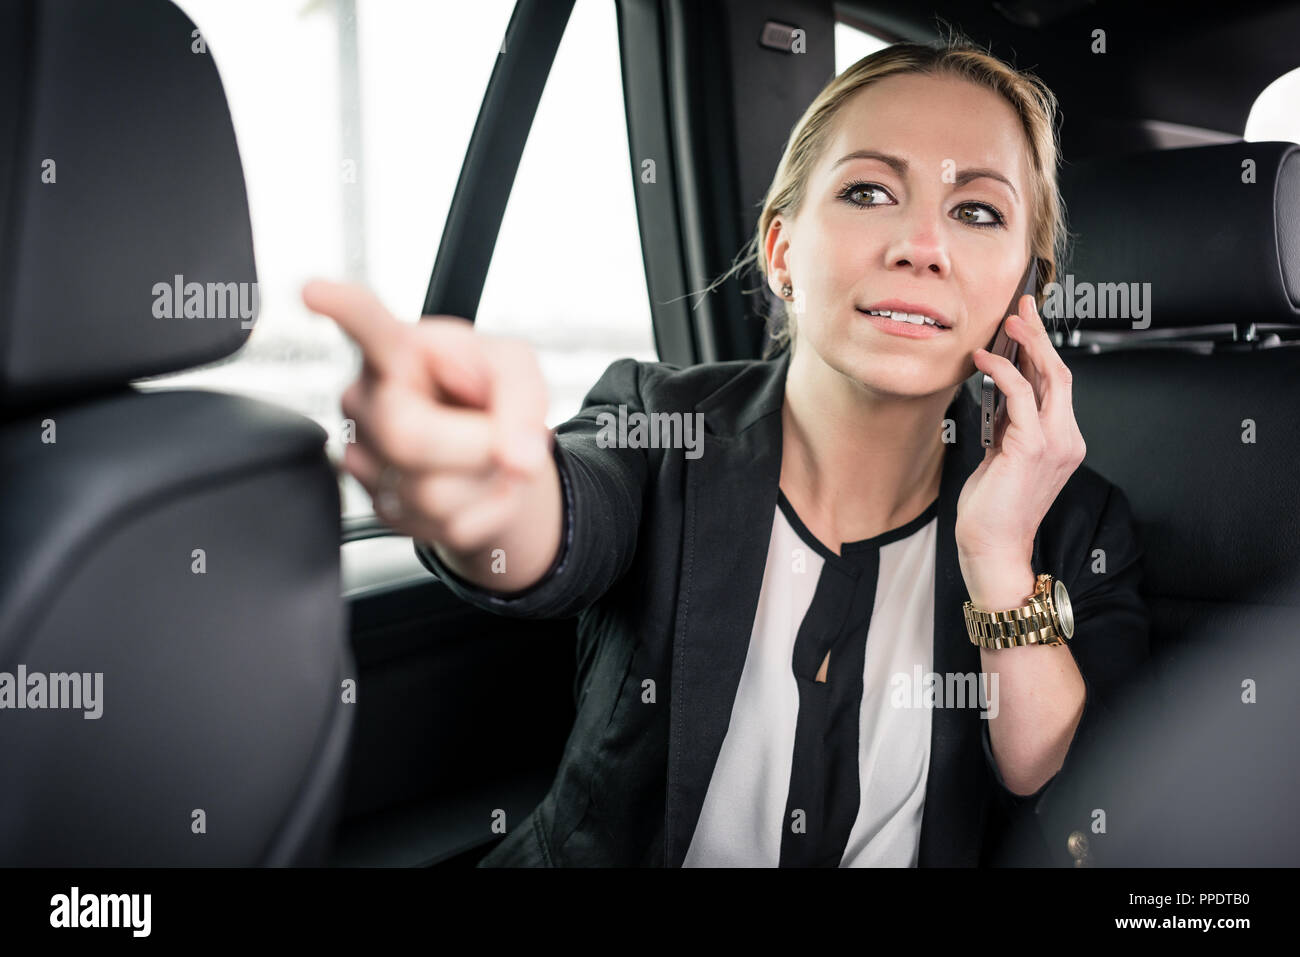 Businesswoman on call pointing finger in car  - Stock Image